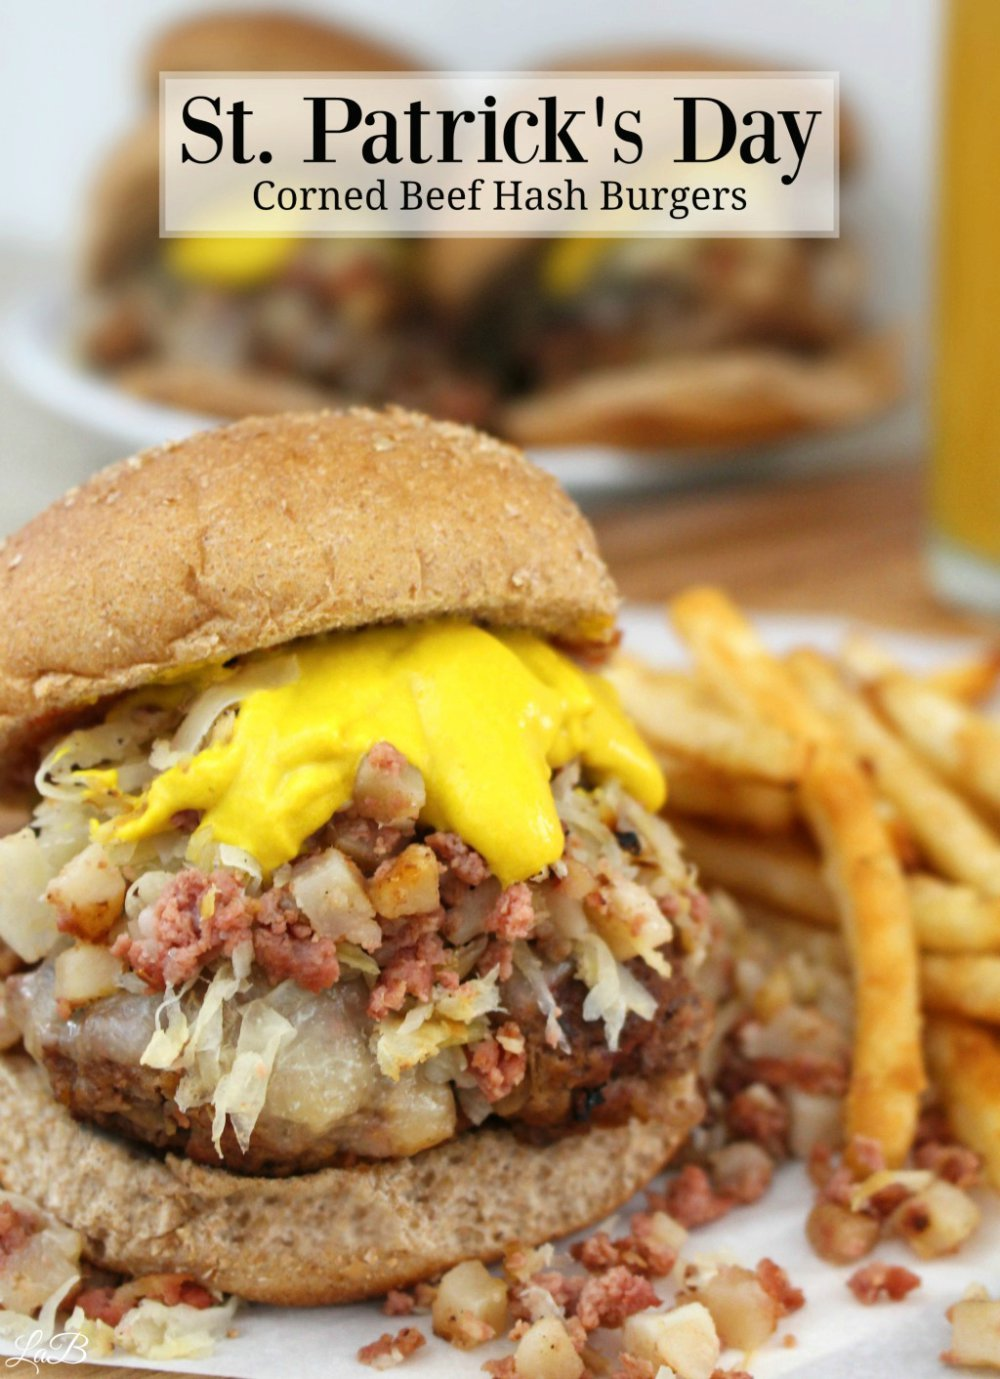 Corned Beef Hash and Kraut Burgers